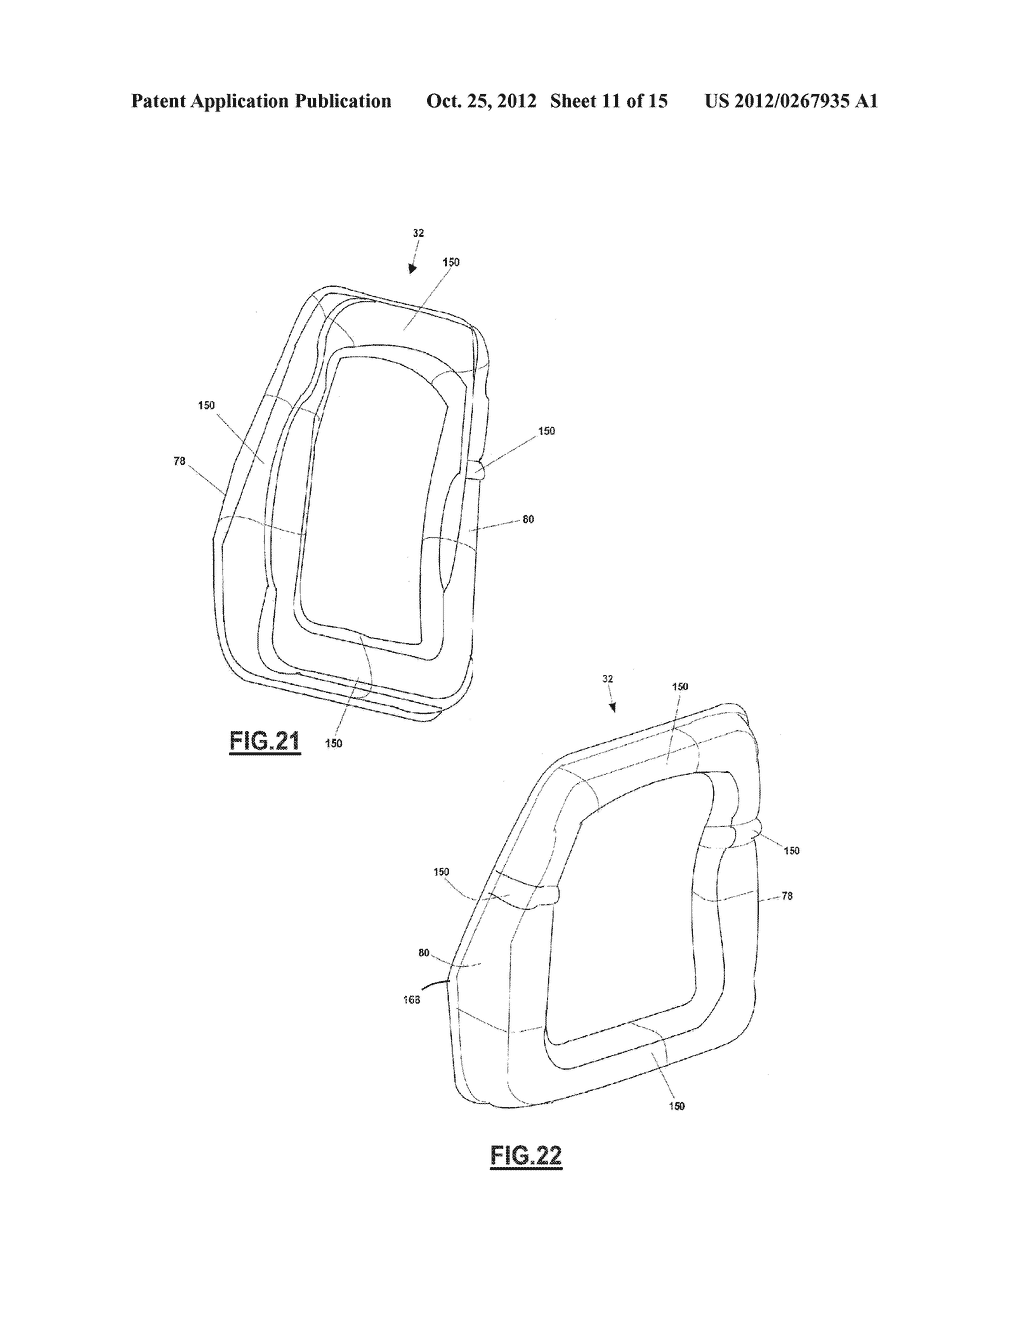 ONE-PIECE SEAT STRUCTURES AND METHOD OF FORMING - diagram, schematic, and image 12